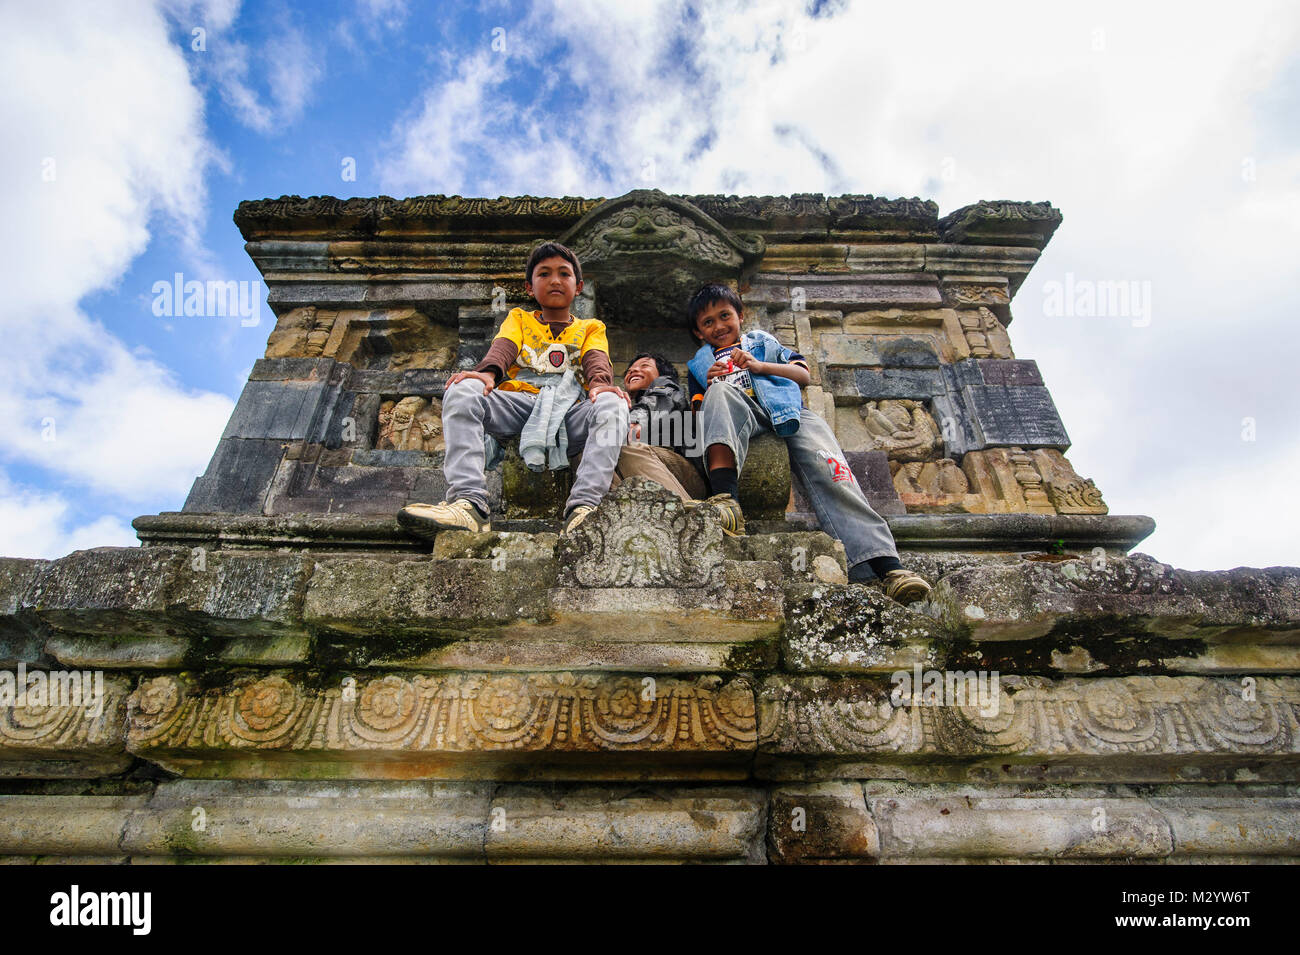 Young boys sitting in a temple of the Arjuna Hindu Dieng temple complex , Dieng Plateau, Java, Indonesia - Stock Image